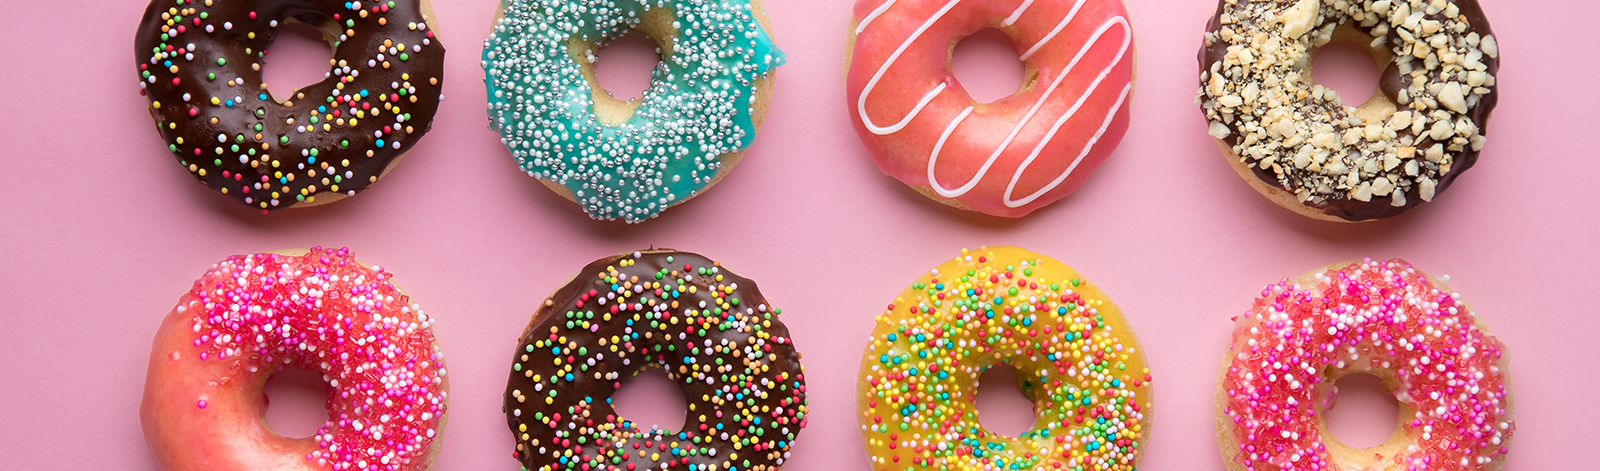 Variety of donuts on a pink background